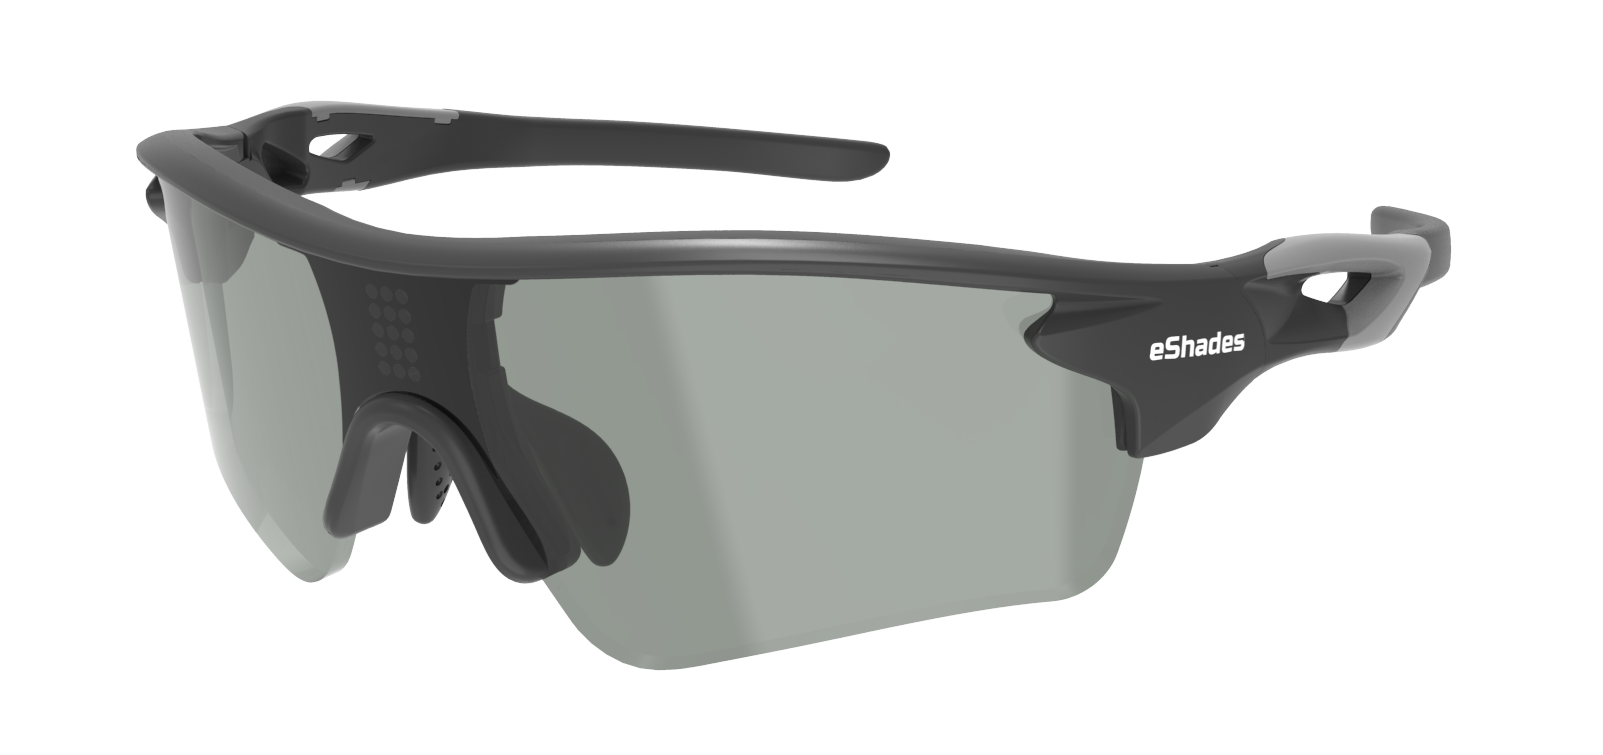 eShades Solar Powered Instantly Dimming Sunglasses - trendshades.com